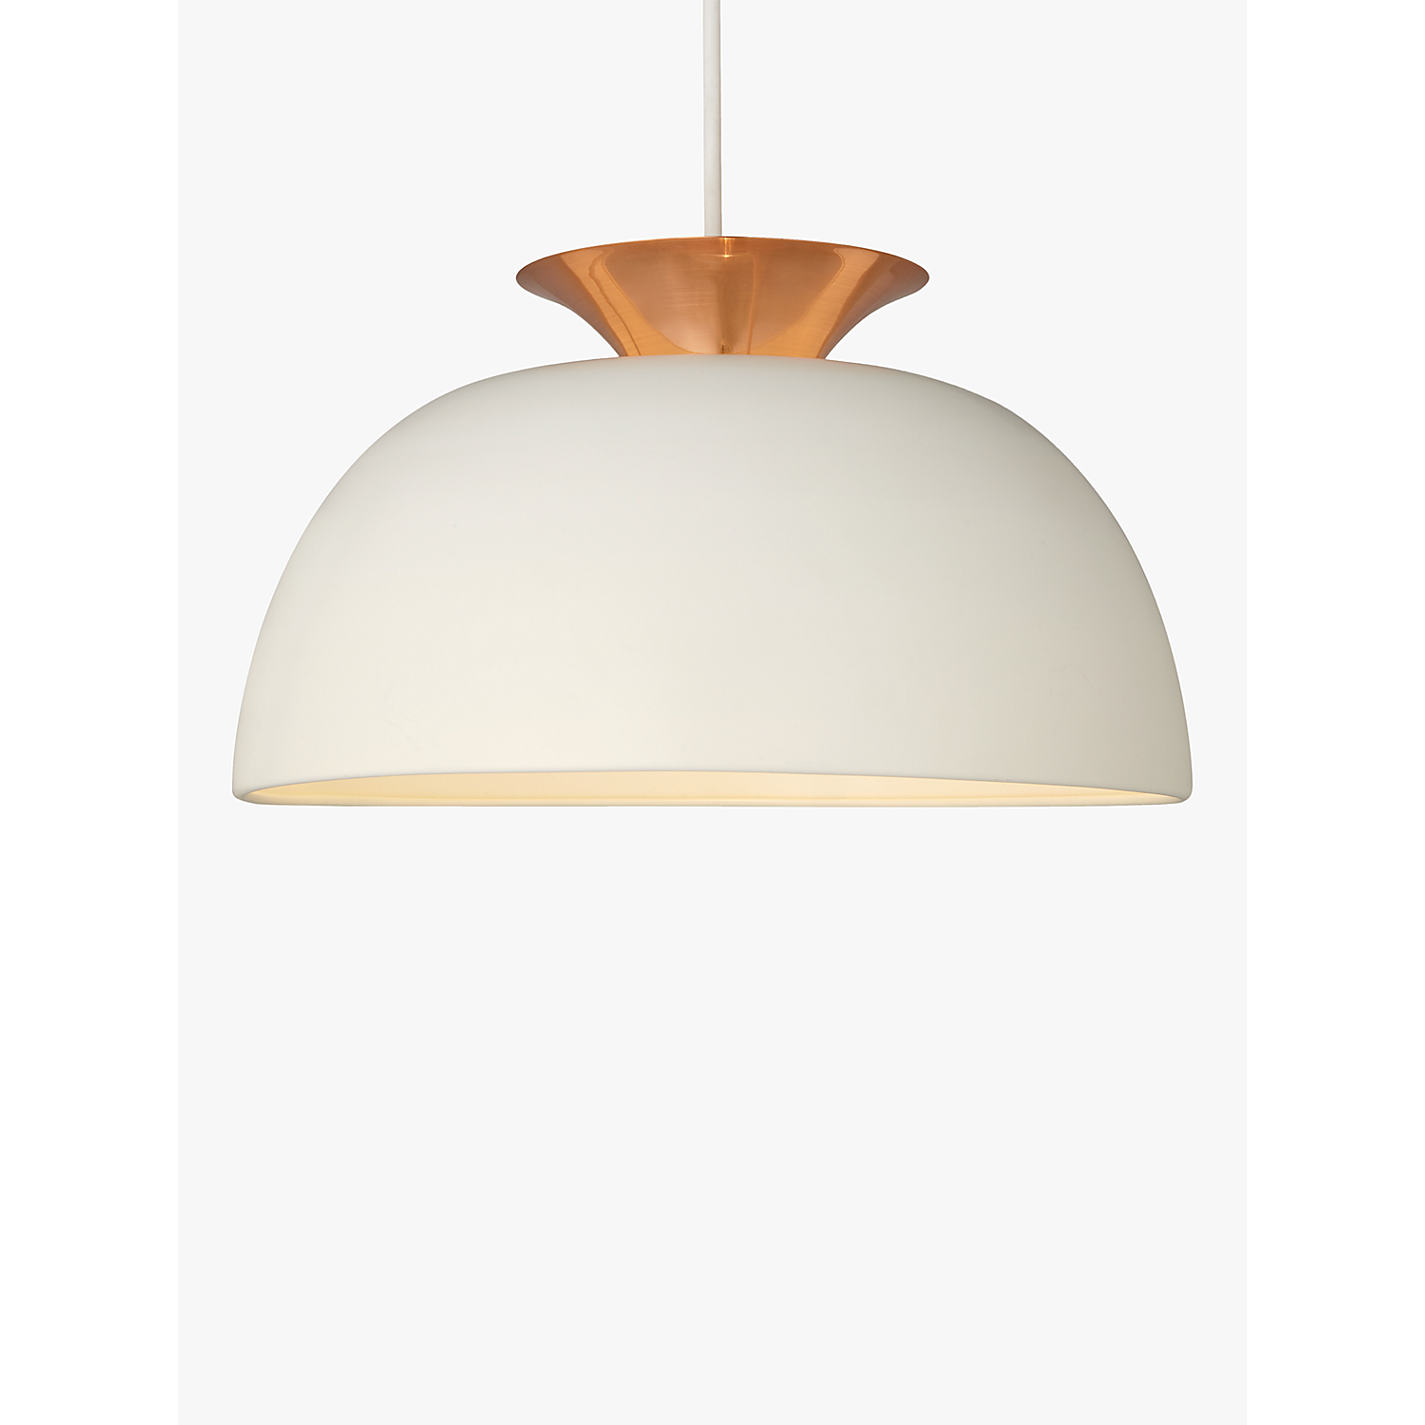 Buy john lewis titus utility easy to fit pendant shade john lewis buy john lewis titus utility easy to fit pendant shade online at johnlewis mozeypictures Gallery